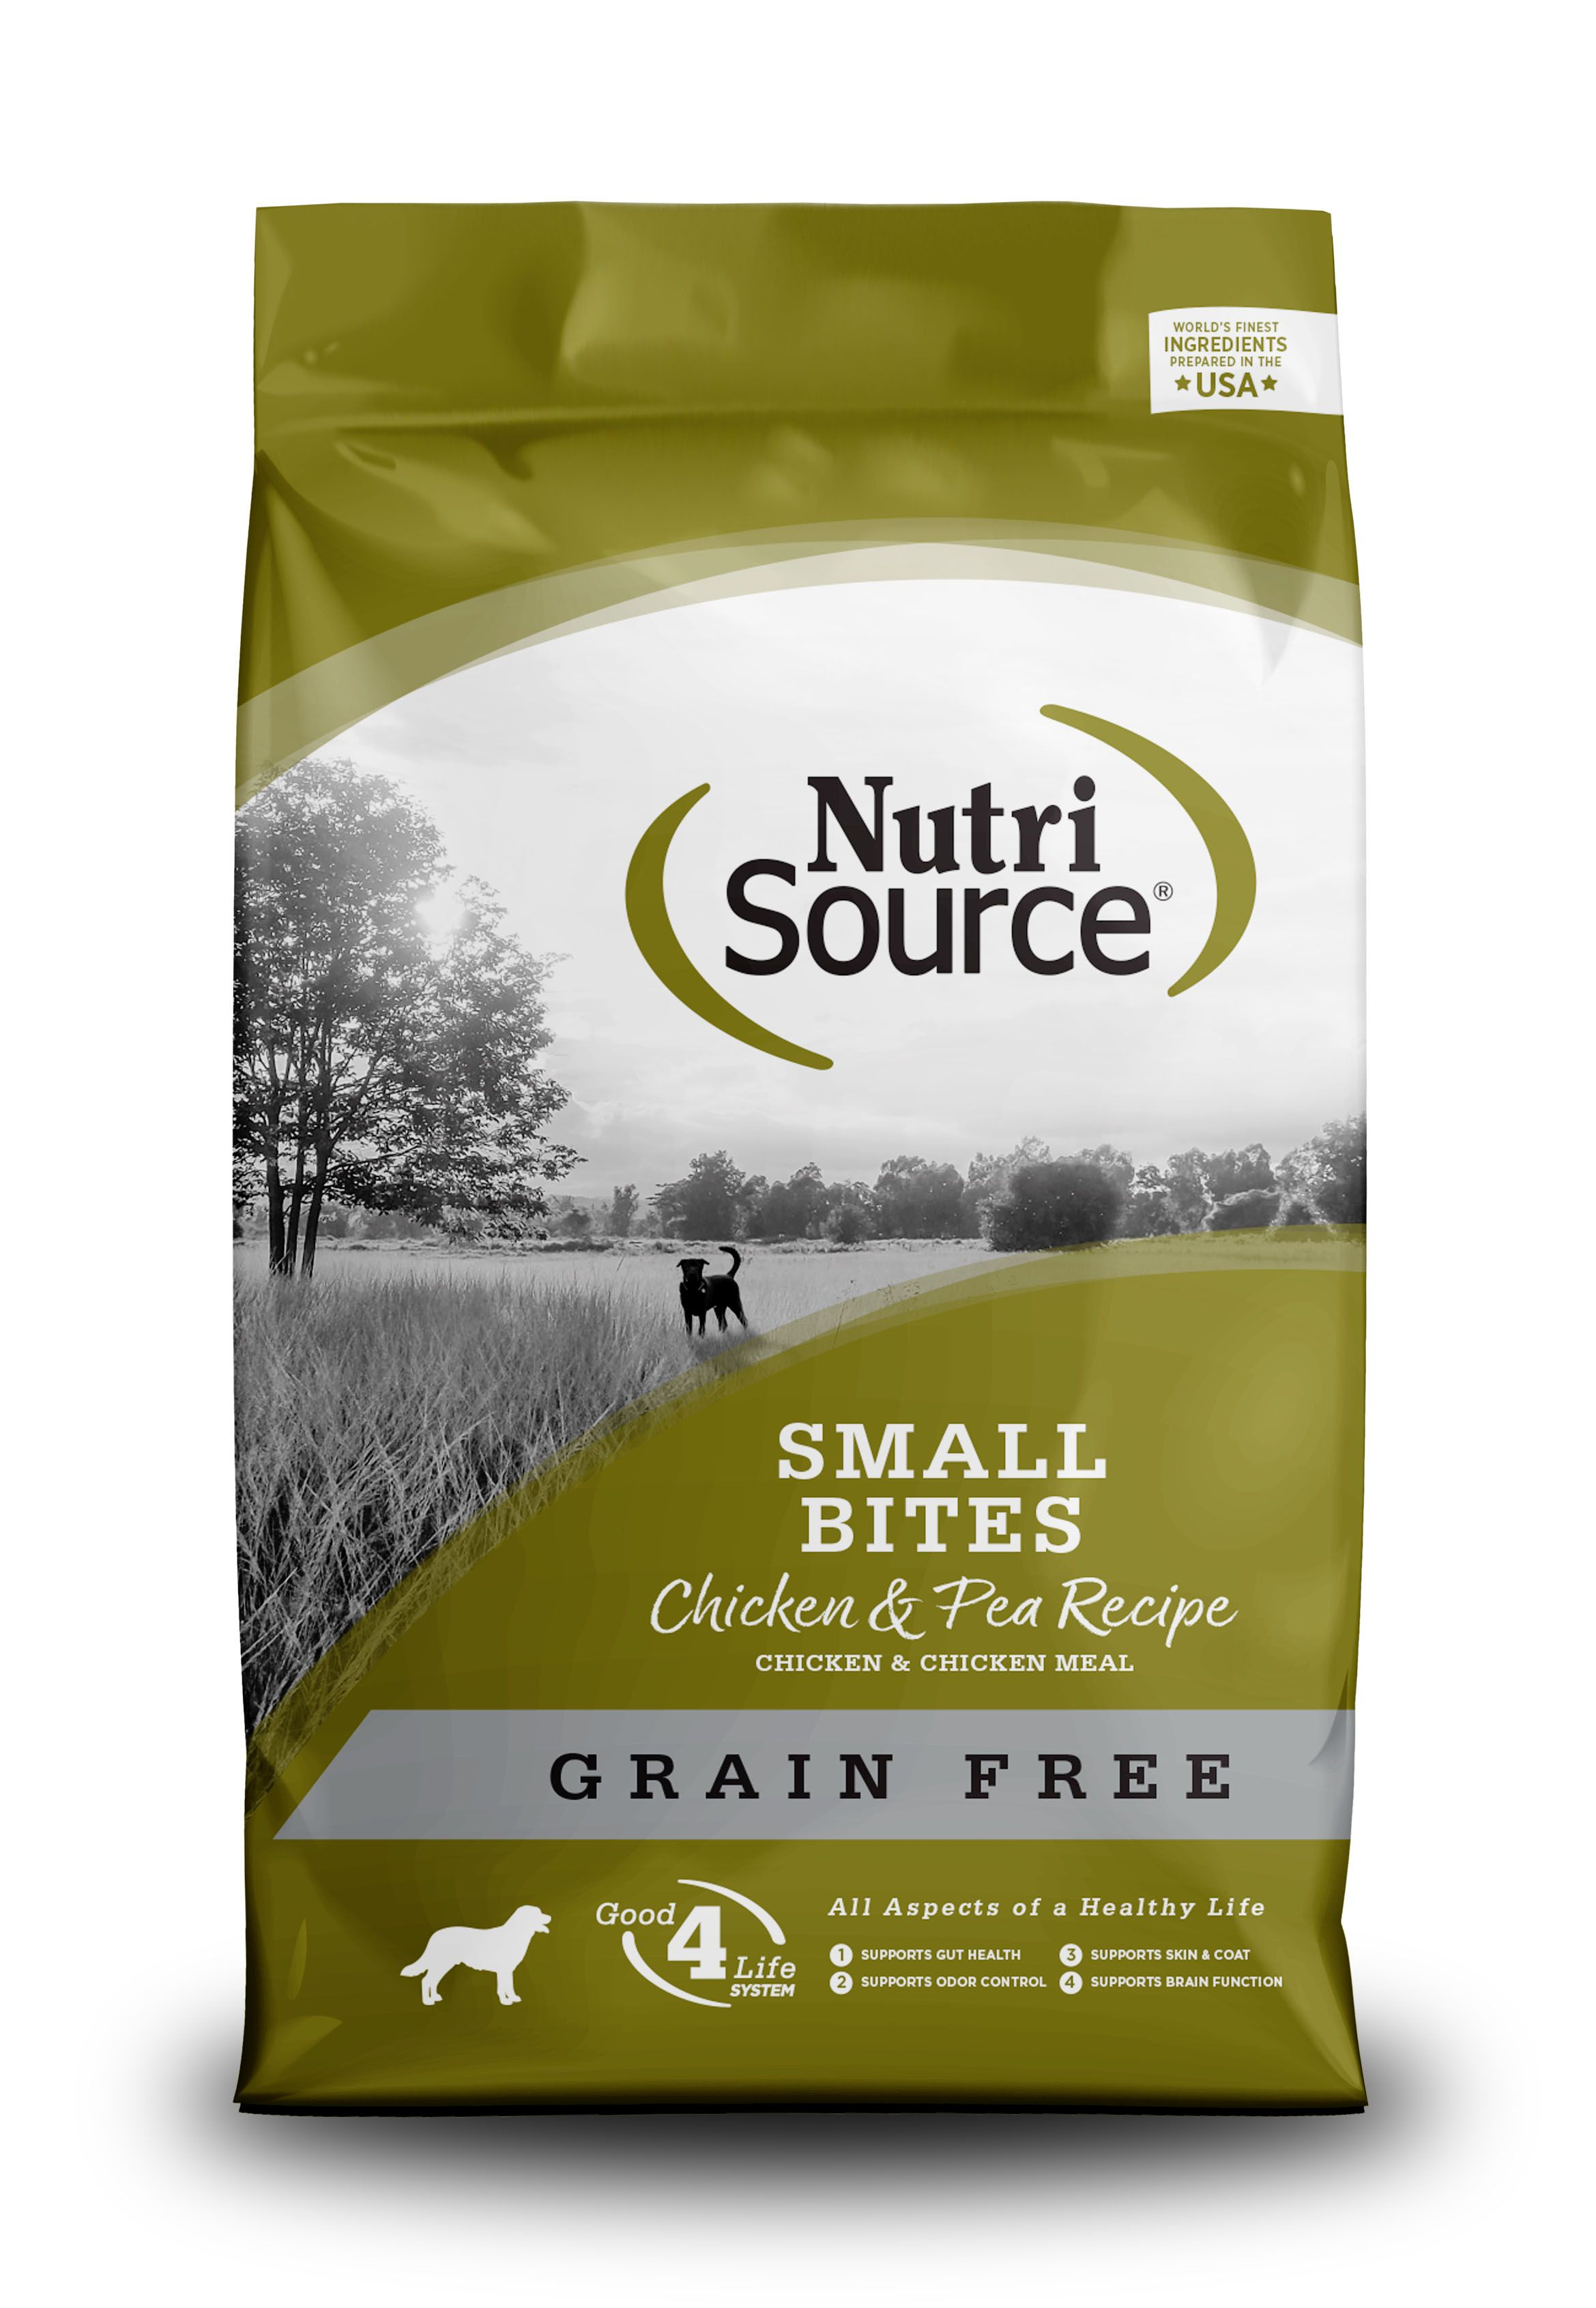 NutriSource Grain Free Small Breed Bites Chicken & Pea Recipe Dry Dog Food Image